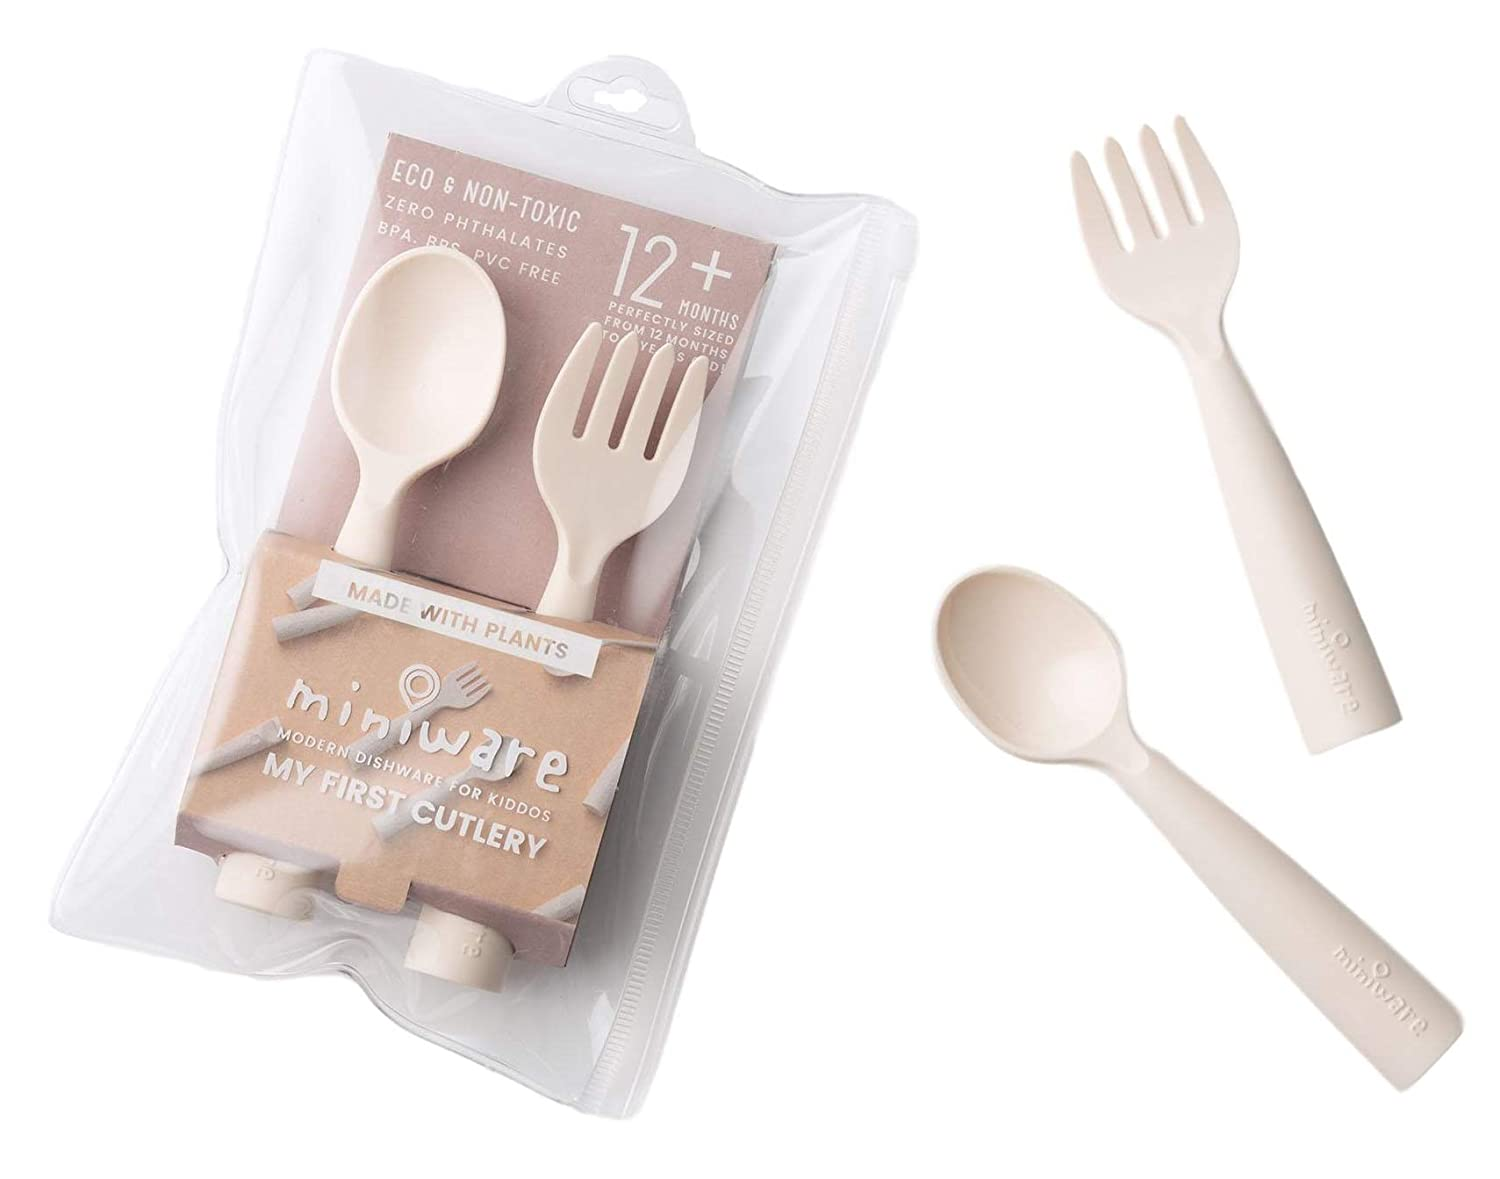 Miniware My First Cutlery Set with Training Spoon, Fork, and Carry Case for Baby Toddler Kids – Promotes Self Feeding | Eco-Friendly Utensils | Modern and Durable Design | Dishwasher Safe (Vanilla)